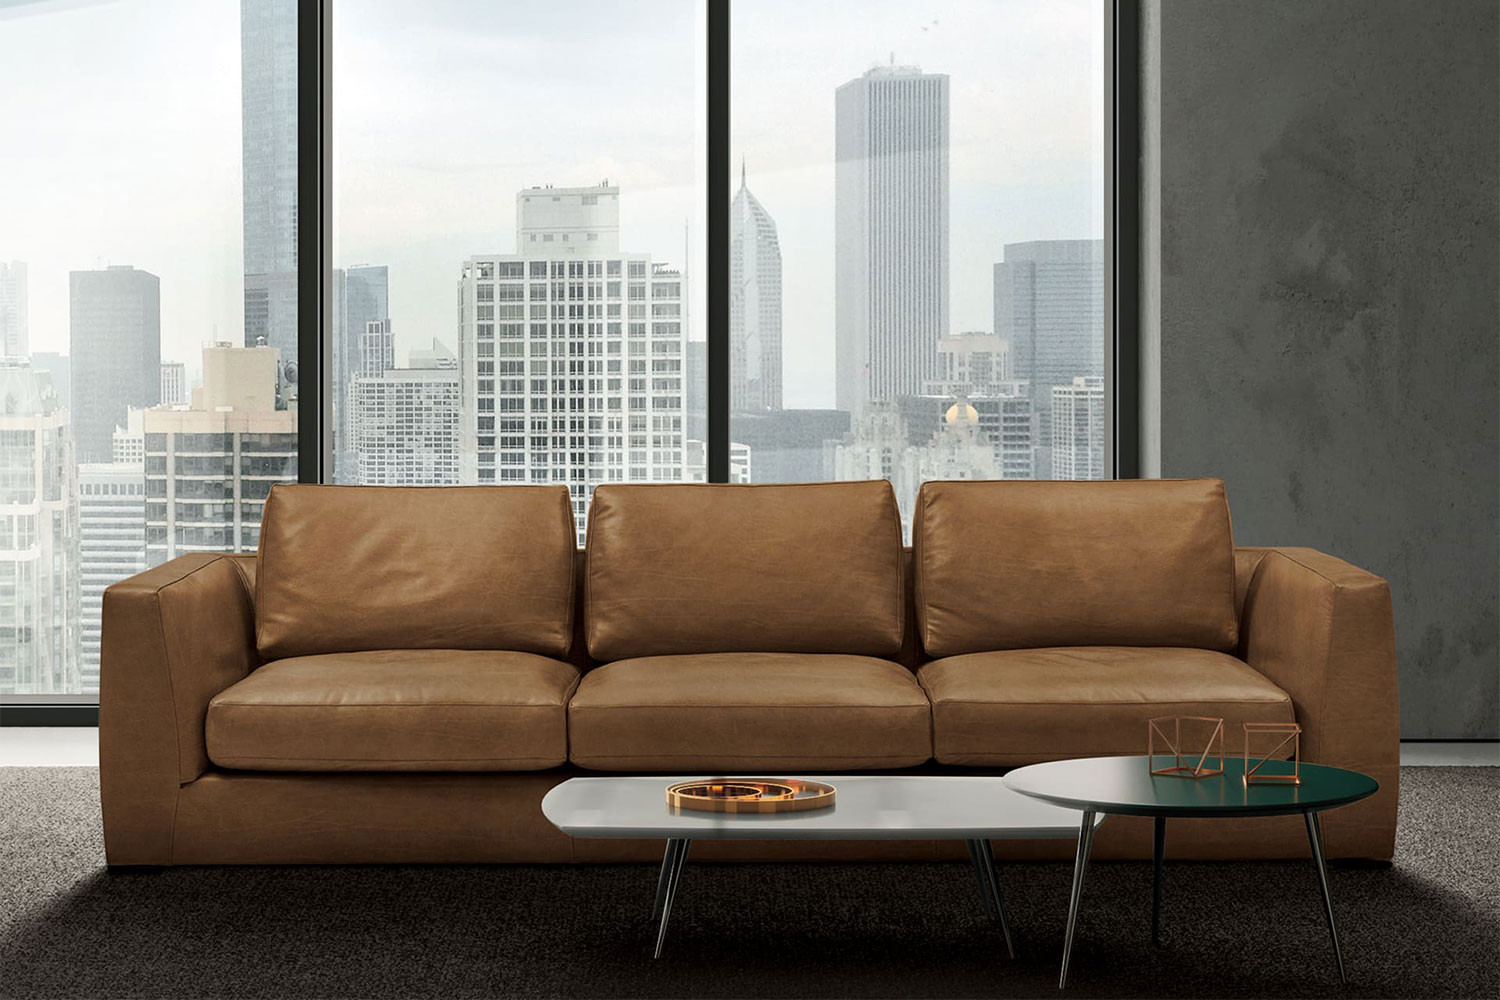 Modern Lawson style sofa that comes as a sectional, chaise end couch or as a 2, 3, 4, 5 or more seater